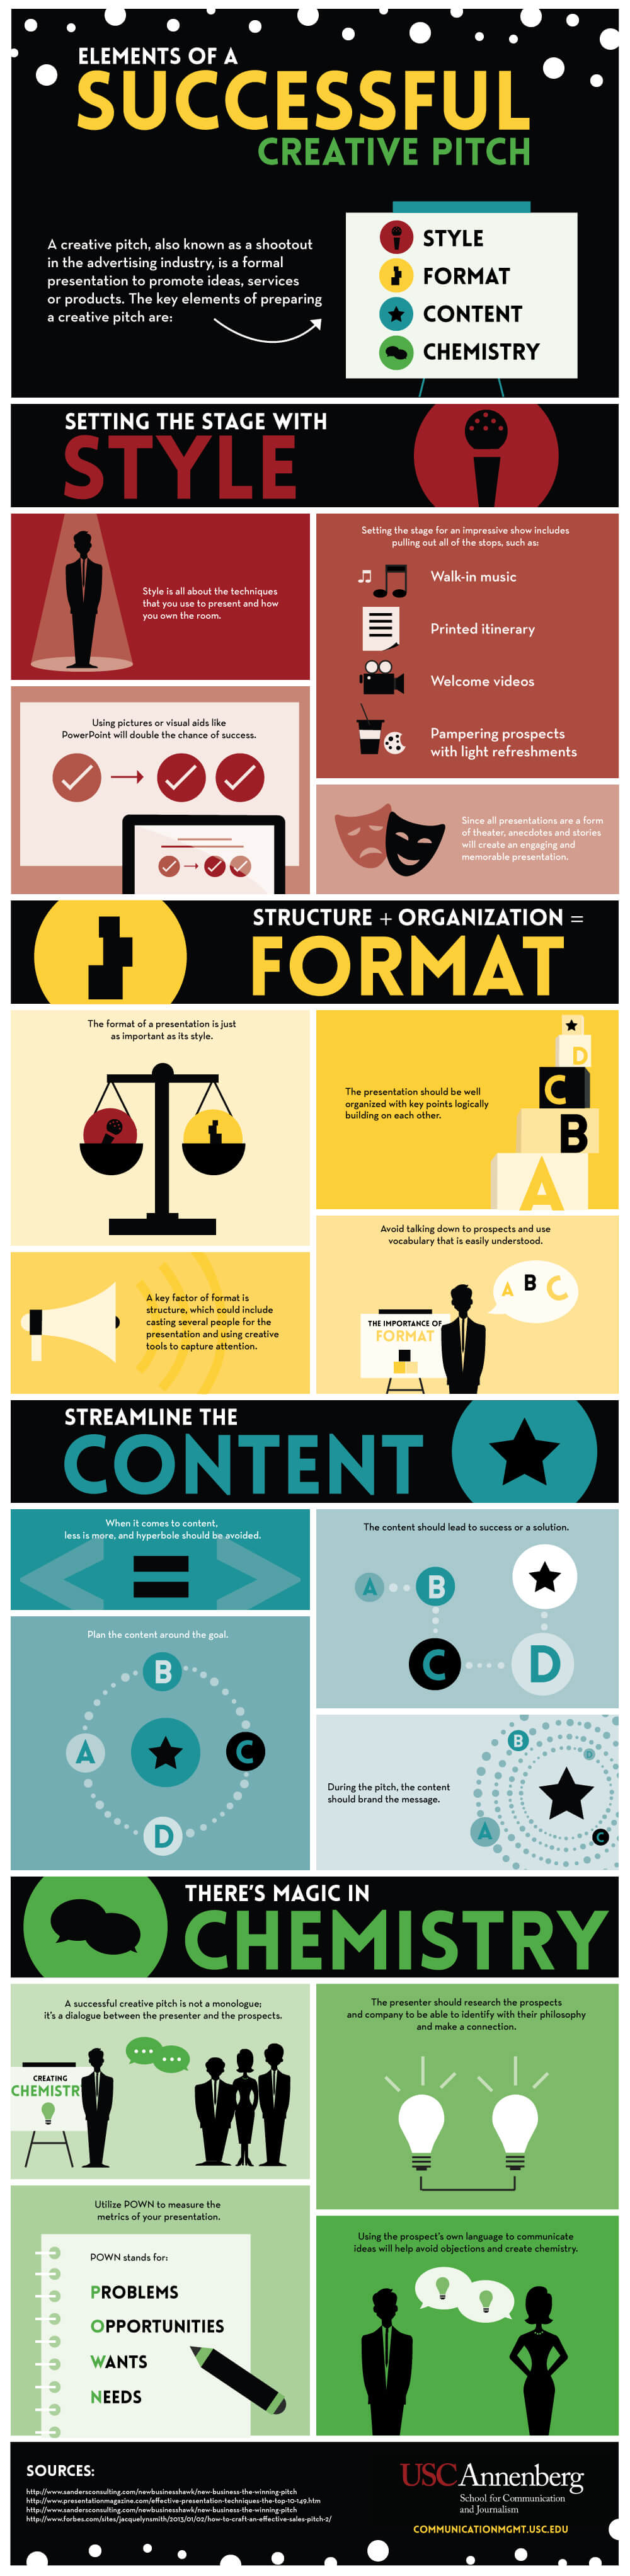 Infographic: Elements of a successful creative pitch